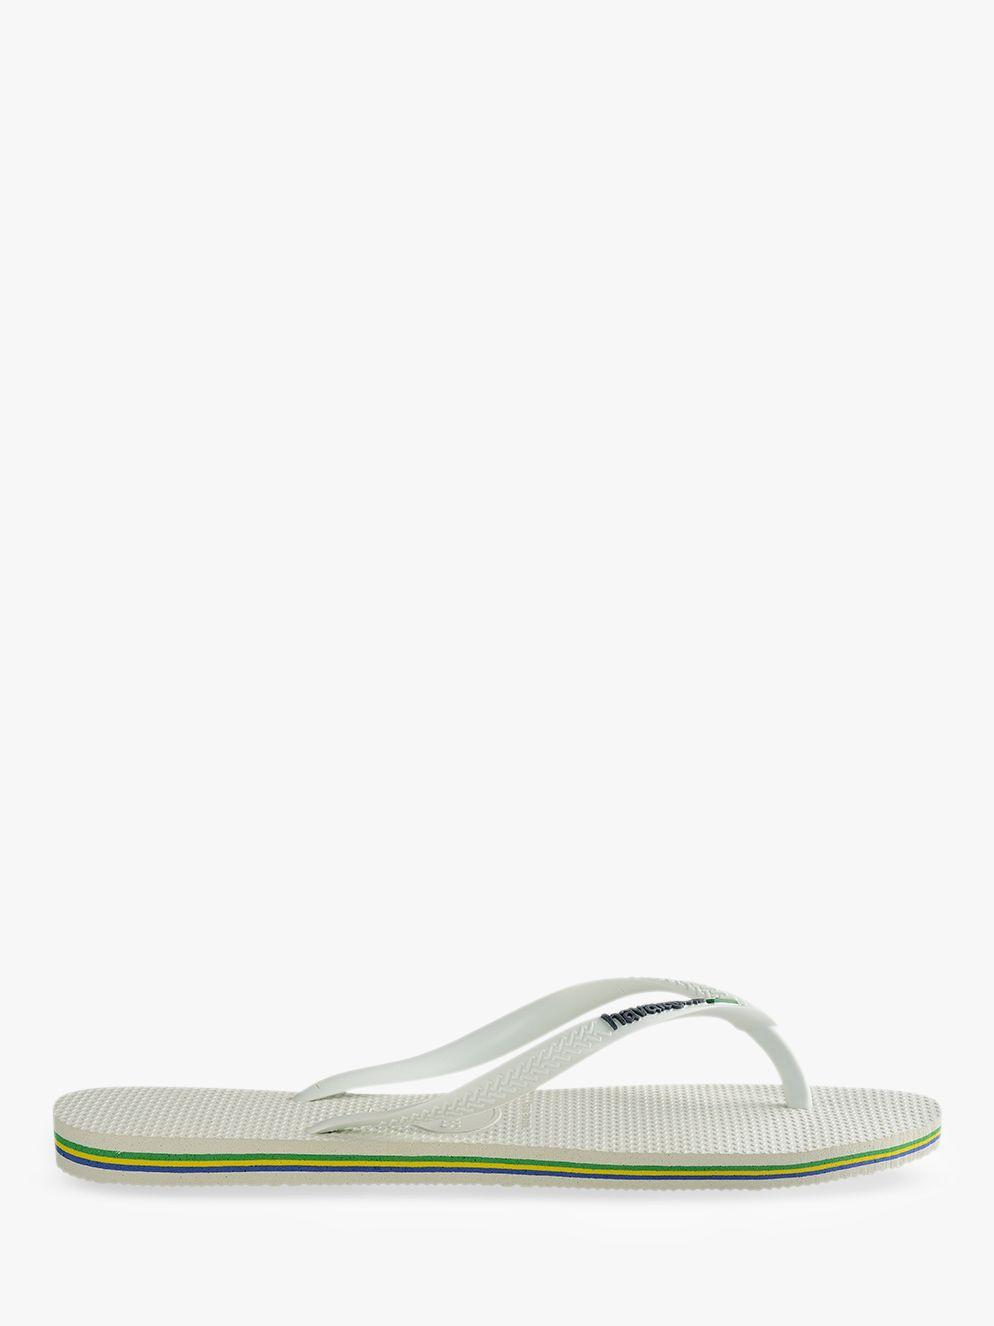 828781e7e46e Havaianas. Women s White Plain Flip Flops. £24 From John Lewis and Partners